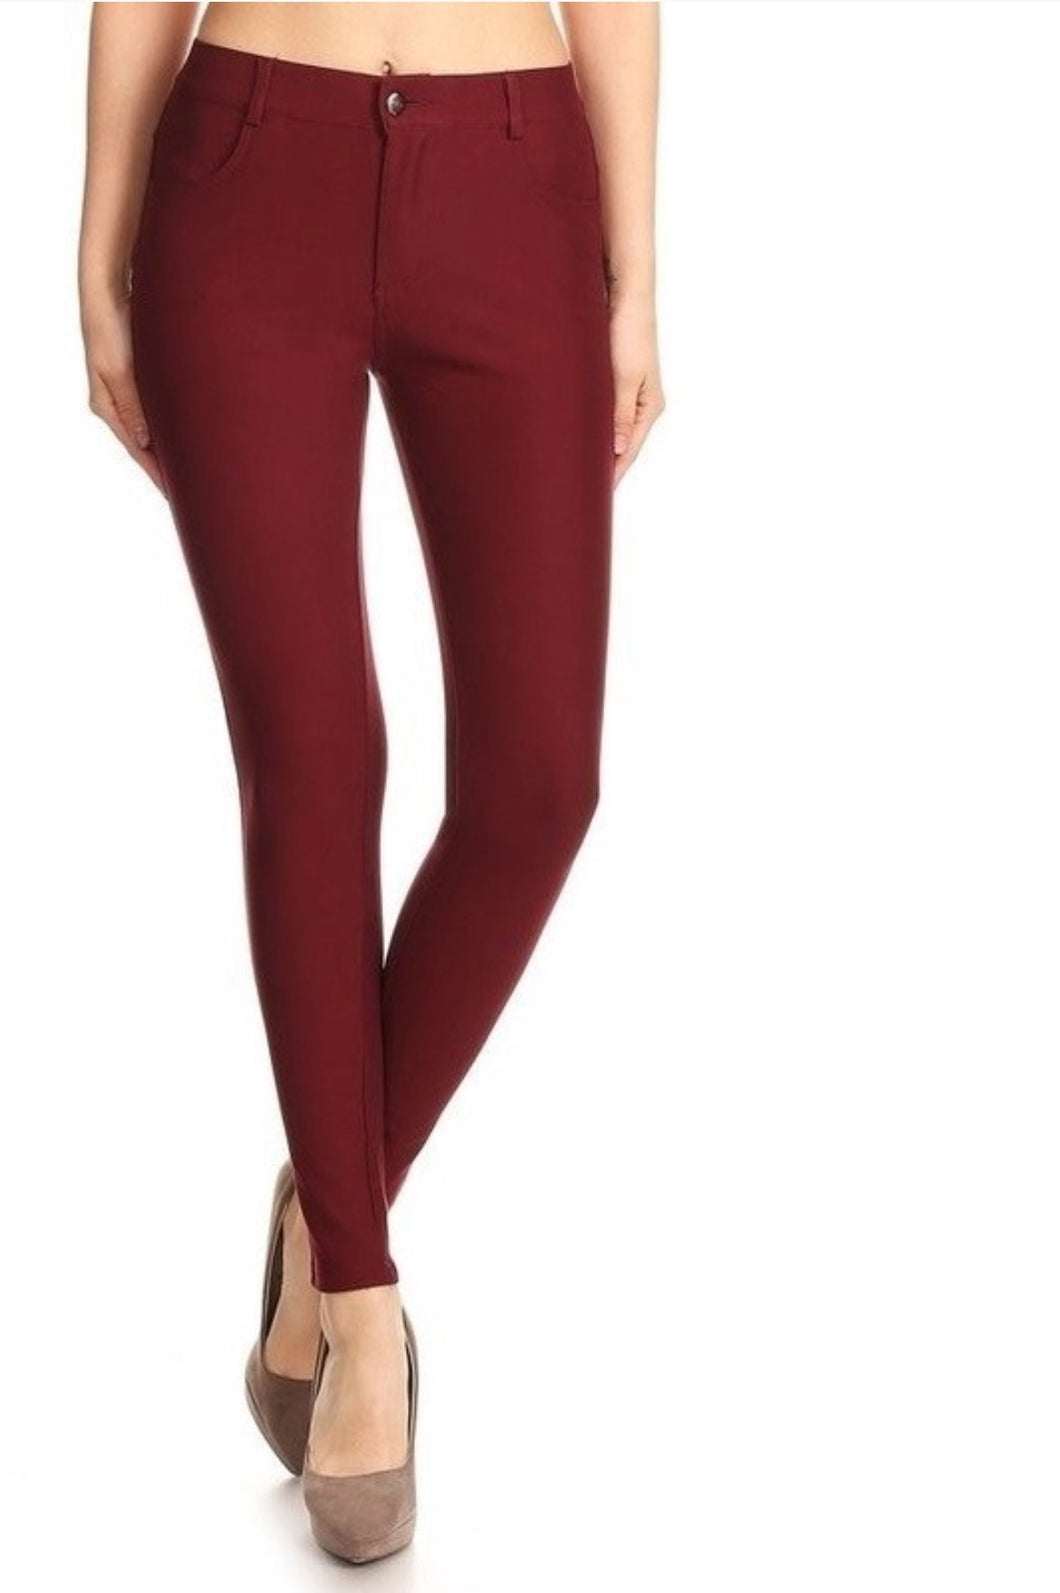 The Best Ponte Pants Ever in Wine